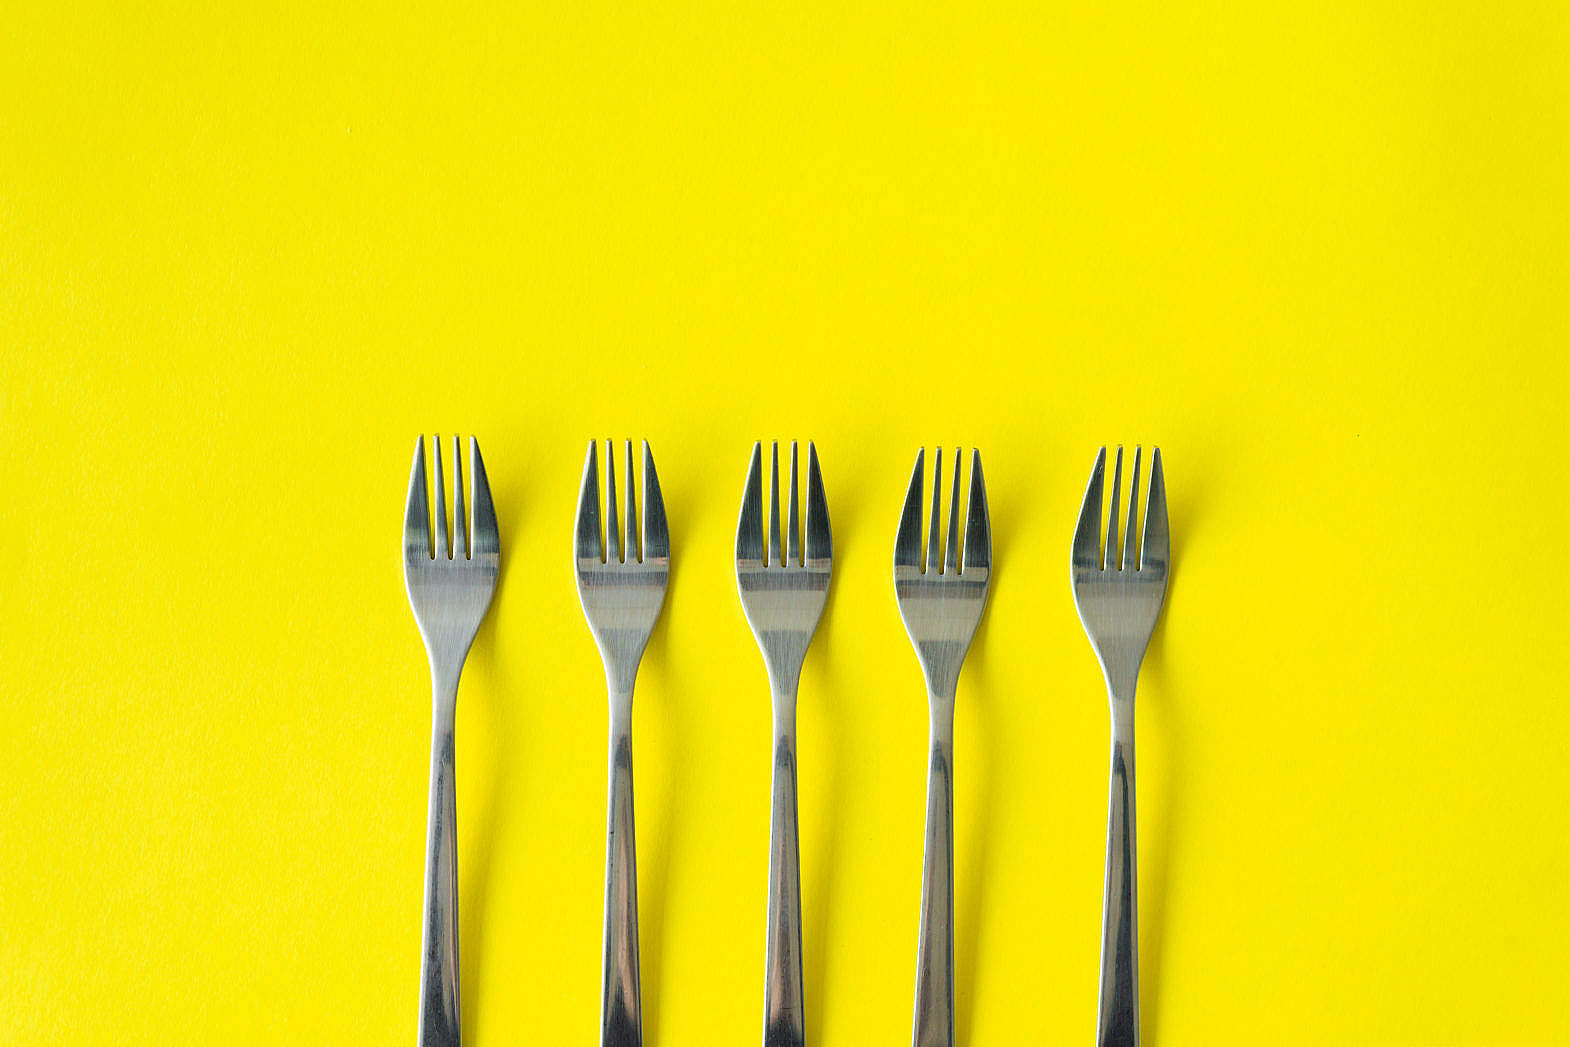 Forks Free Stock Photo Download